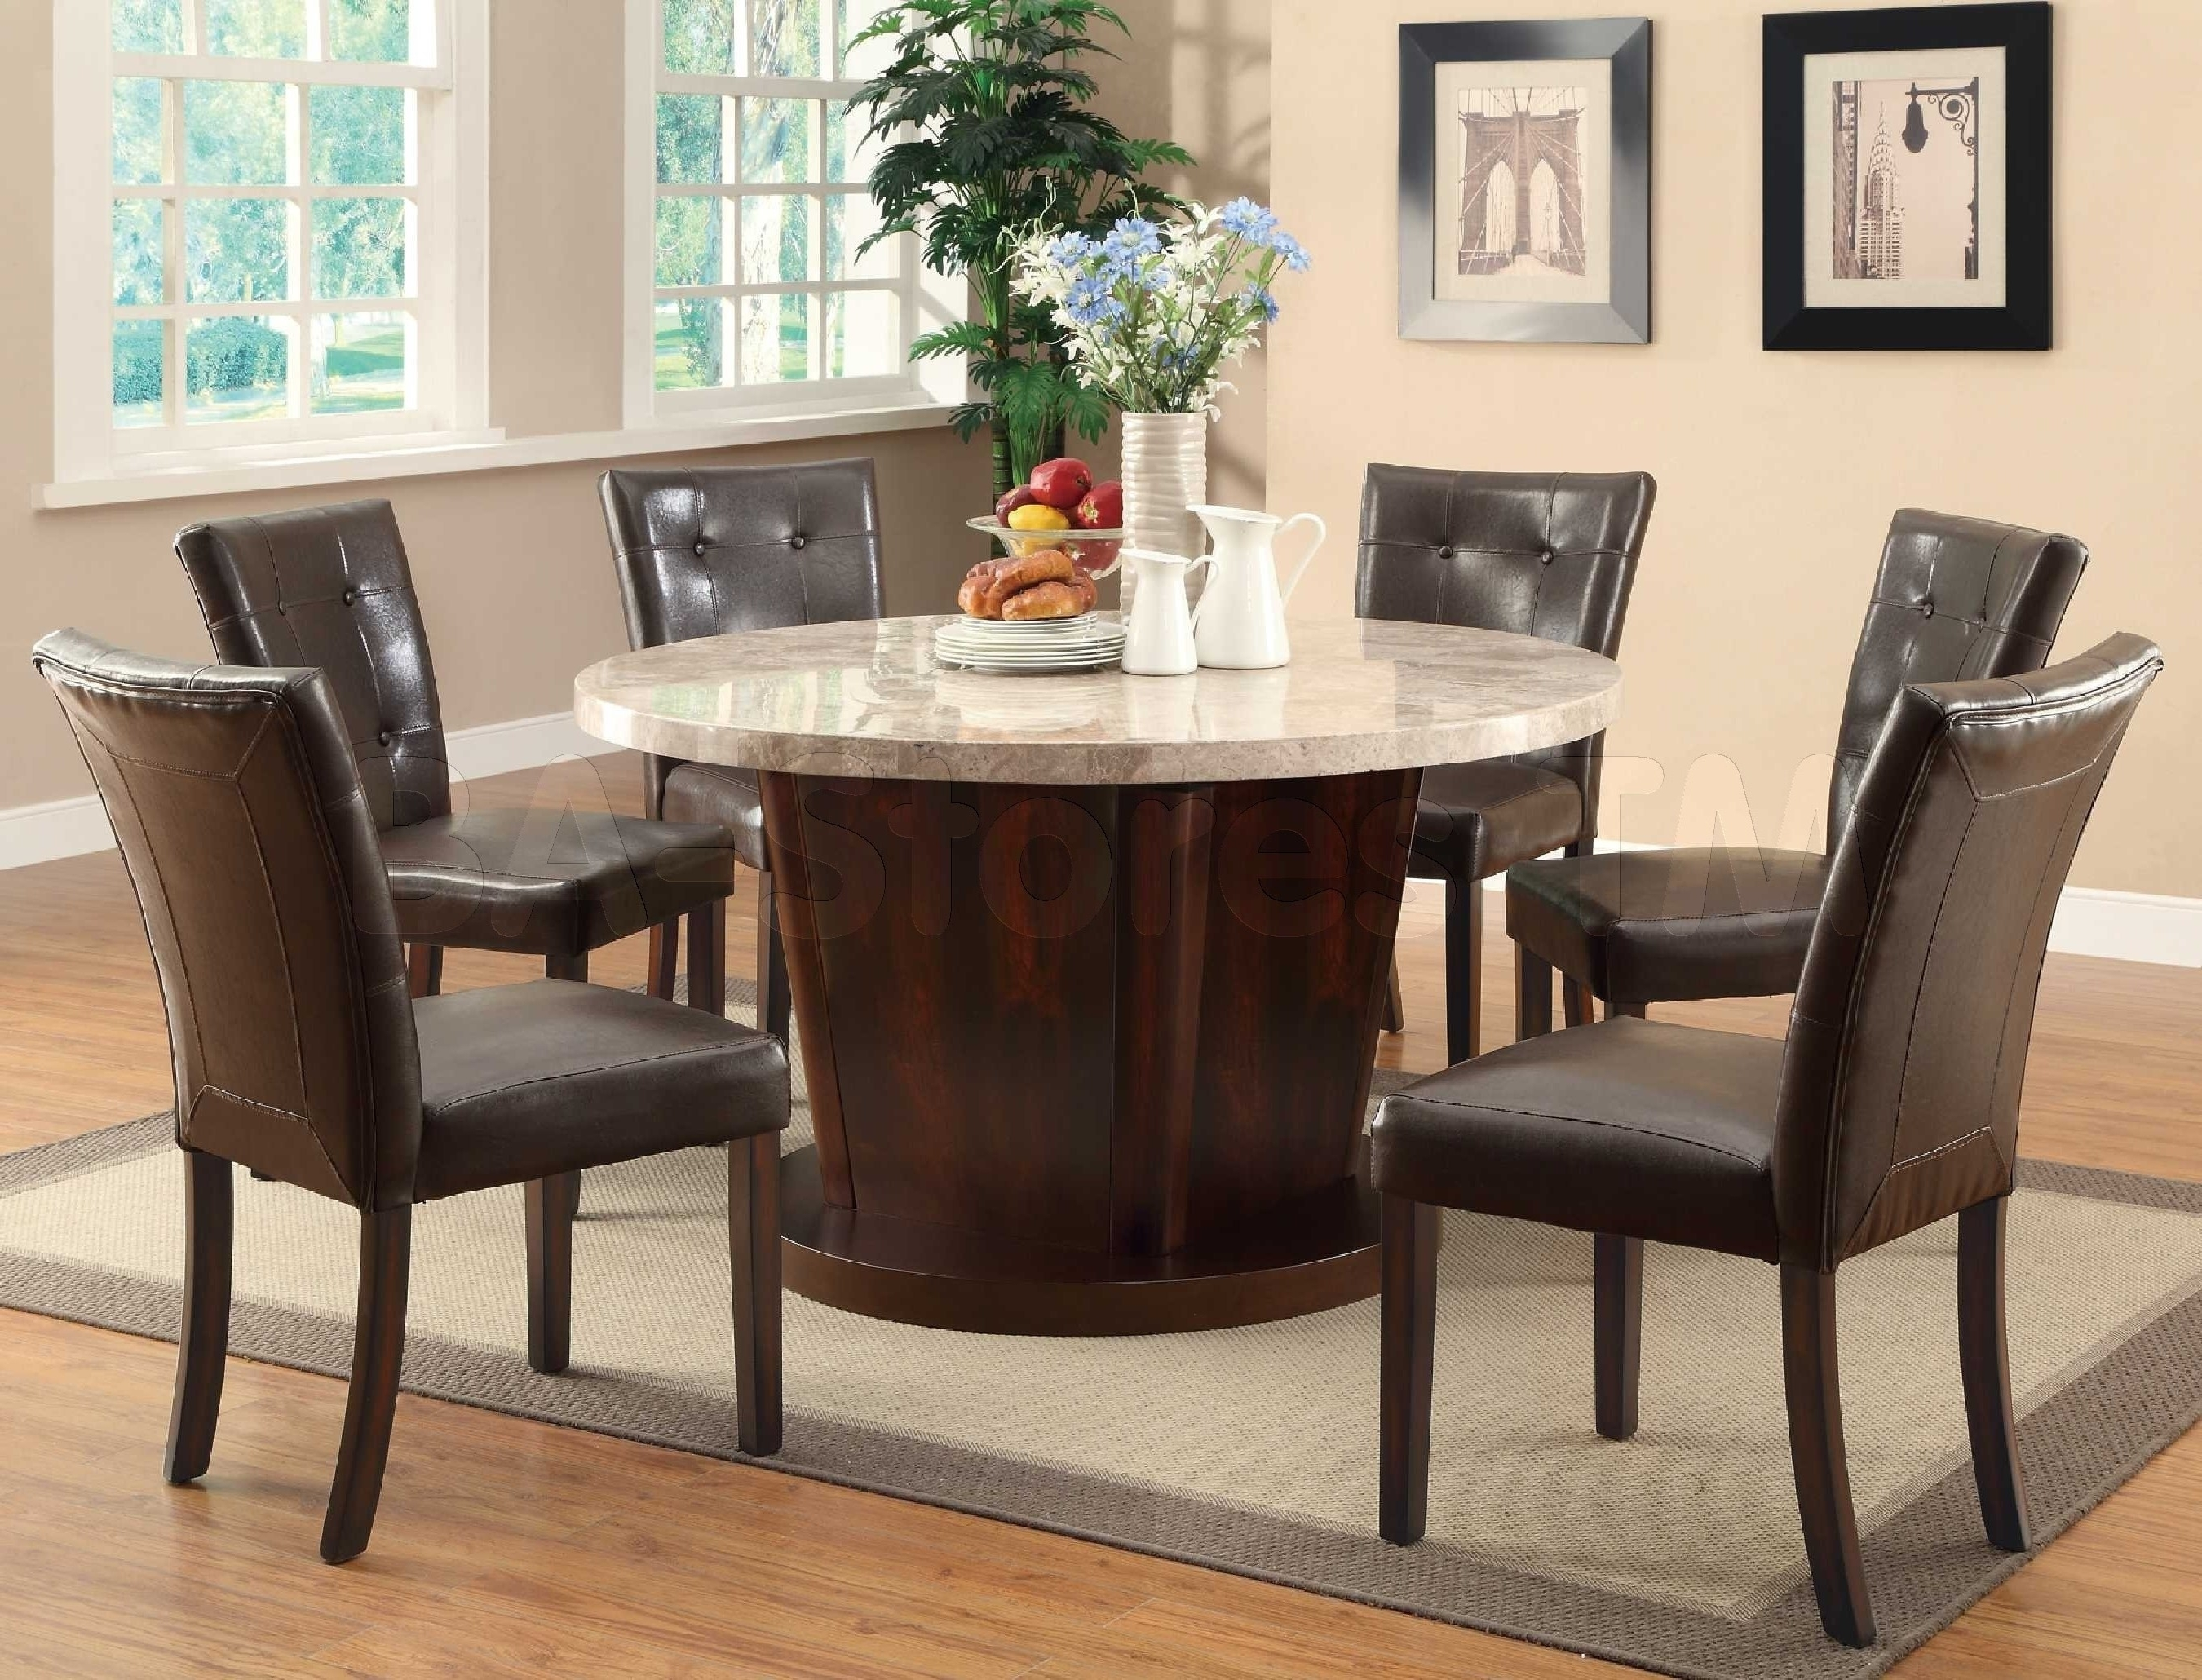 Round 6 Person Dining Tables Within Recent Top 30 Lovely 6 Seater Round Dining Table Dimensions (View 22 of 25)